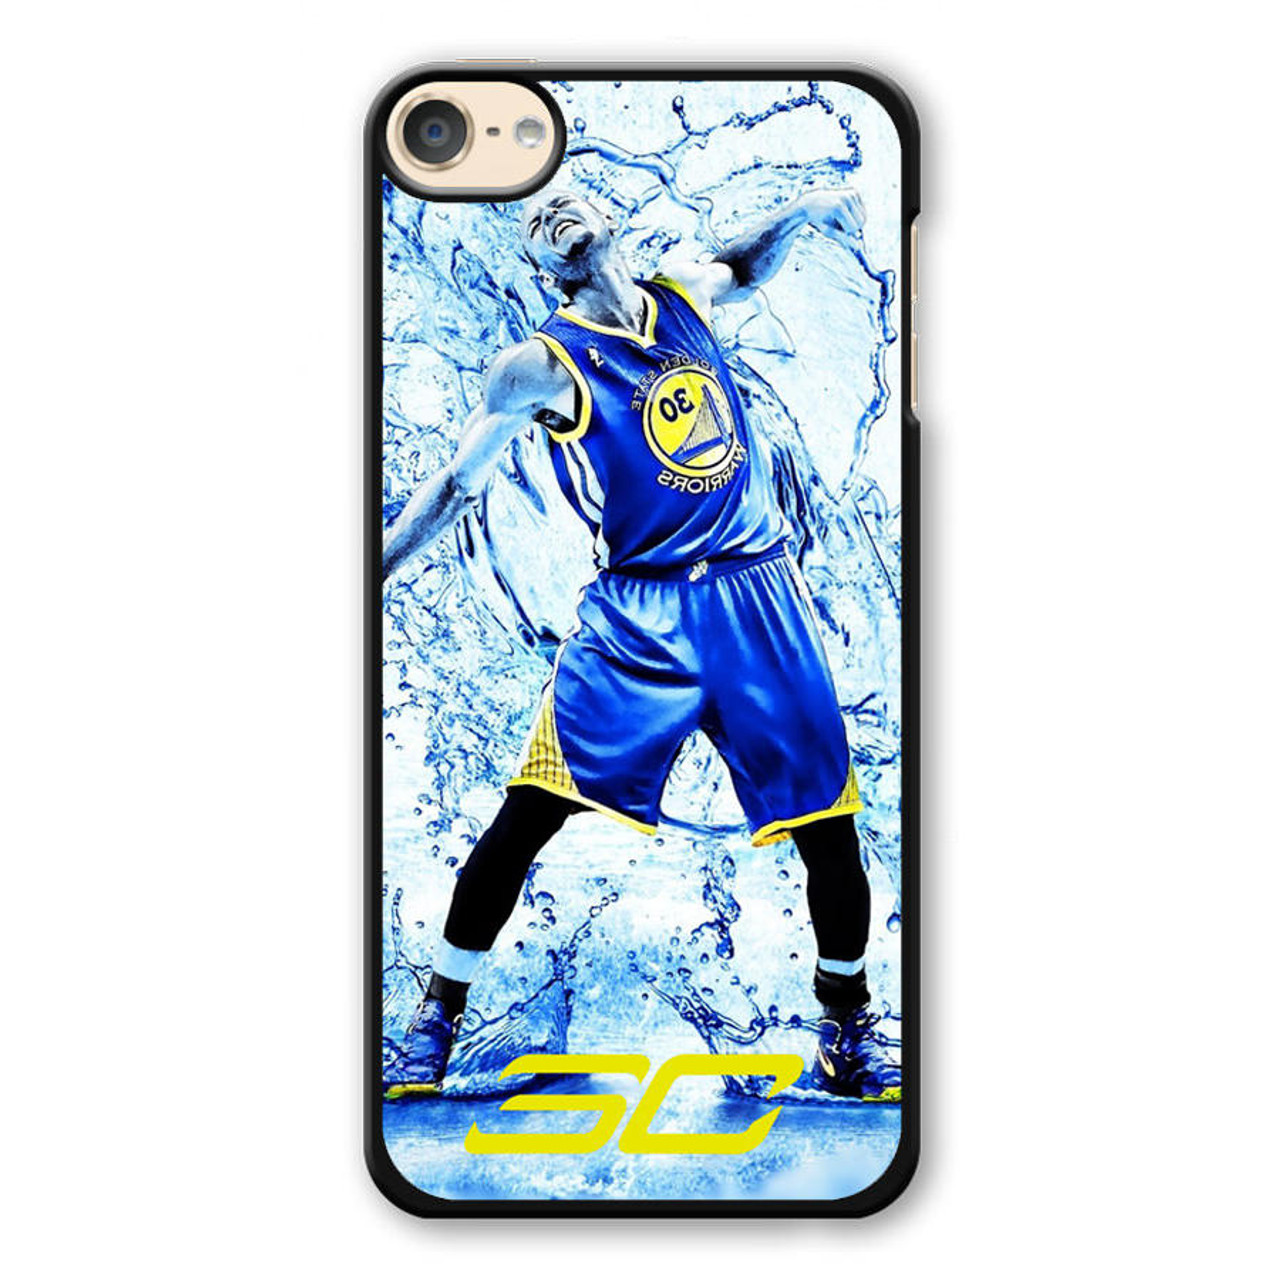 54245b0d36bb Stephen Curry Water iPod Touch 6 Case - CASESHUNTER